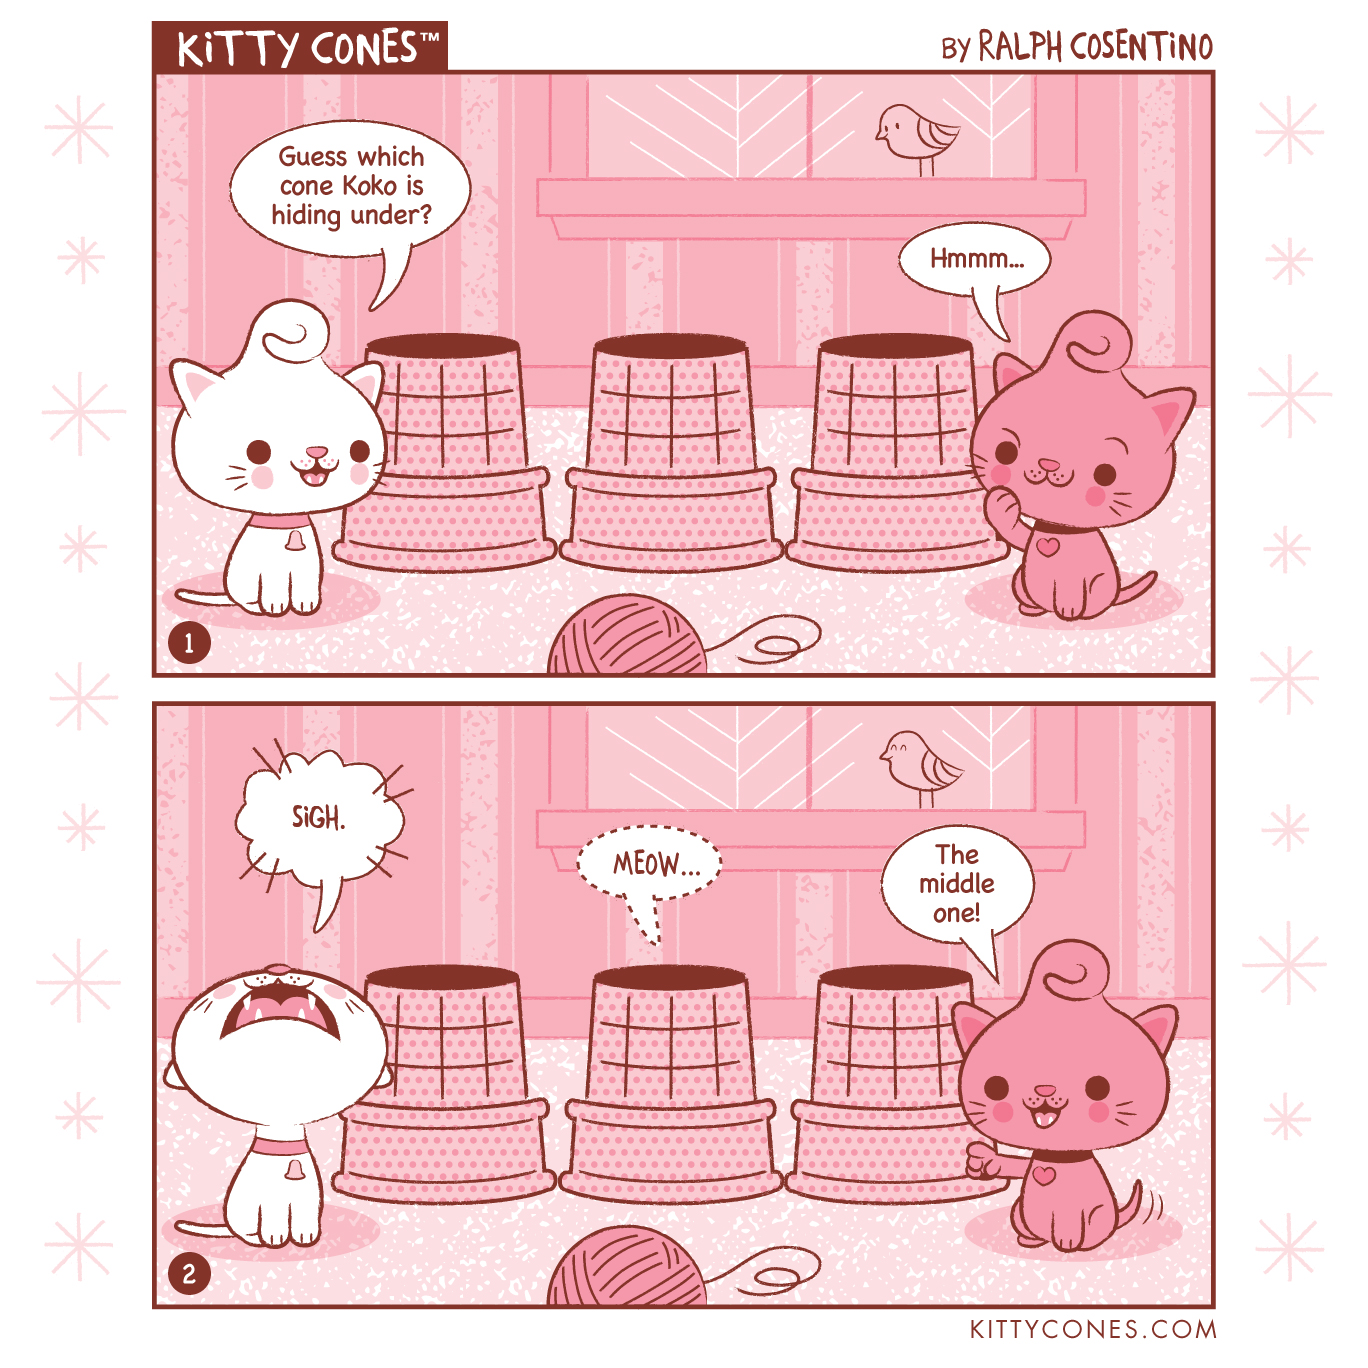 Kitty Cones Comic Strip # 3